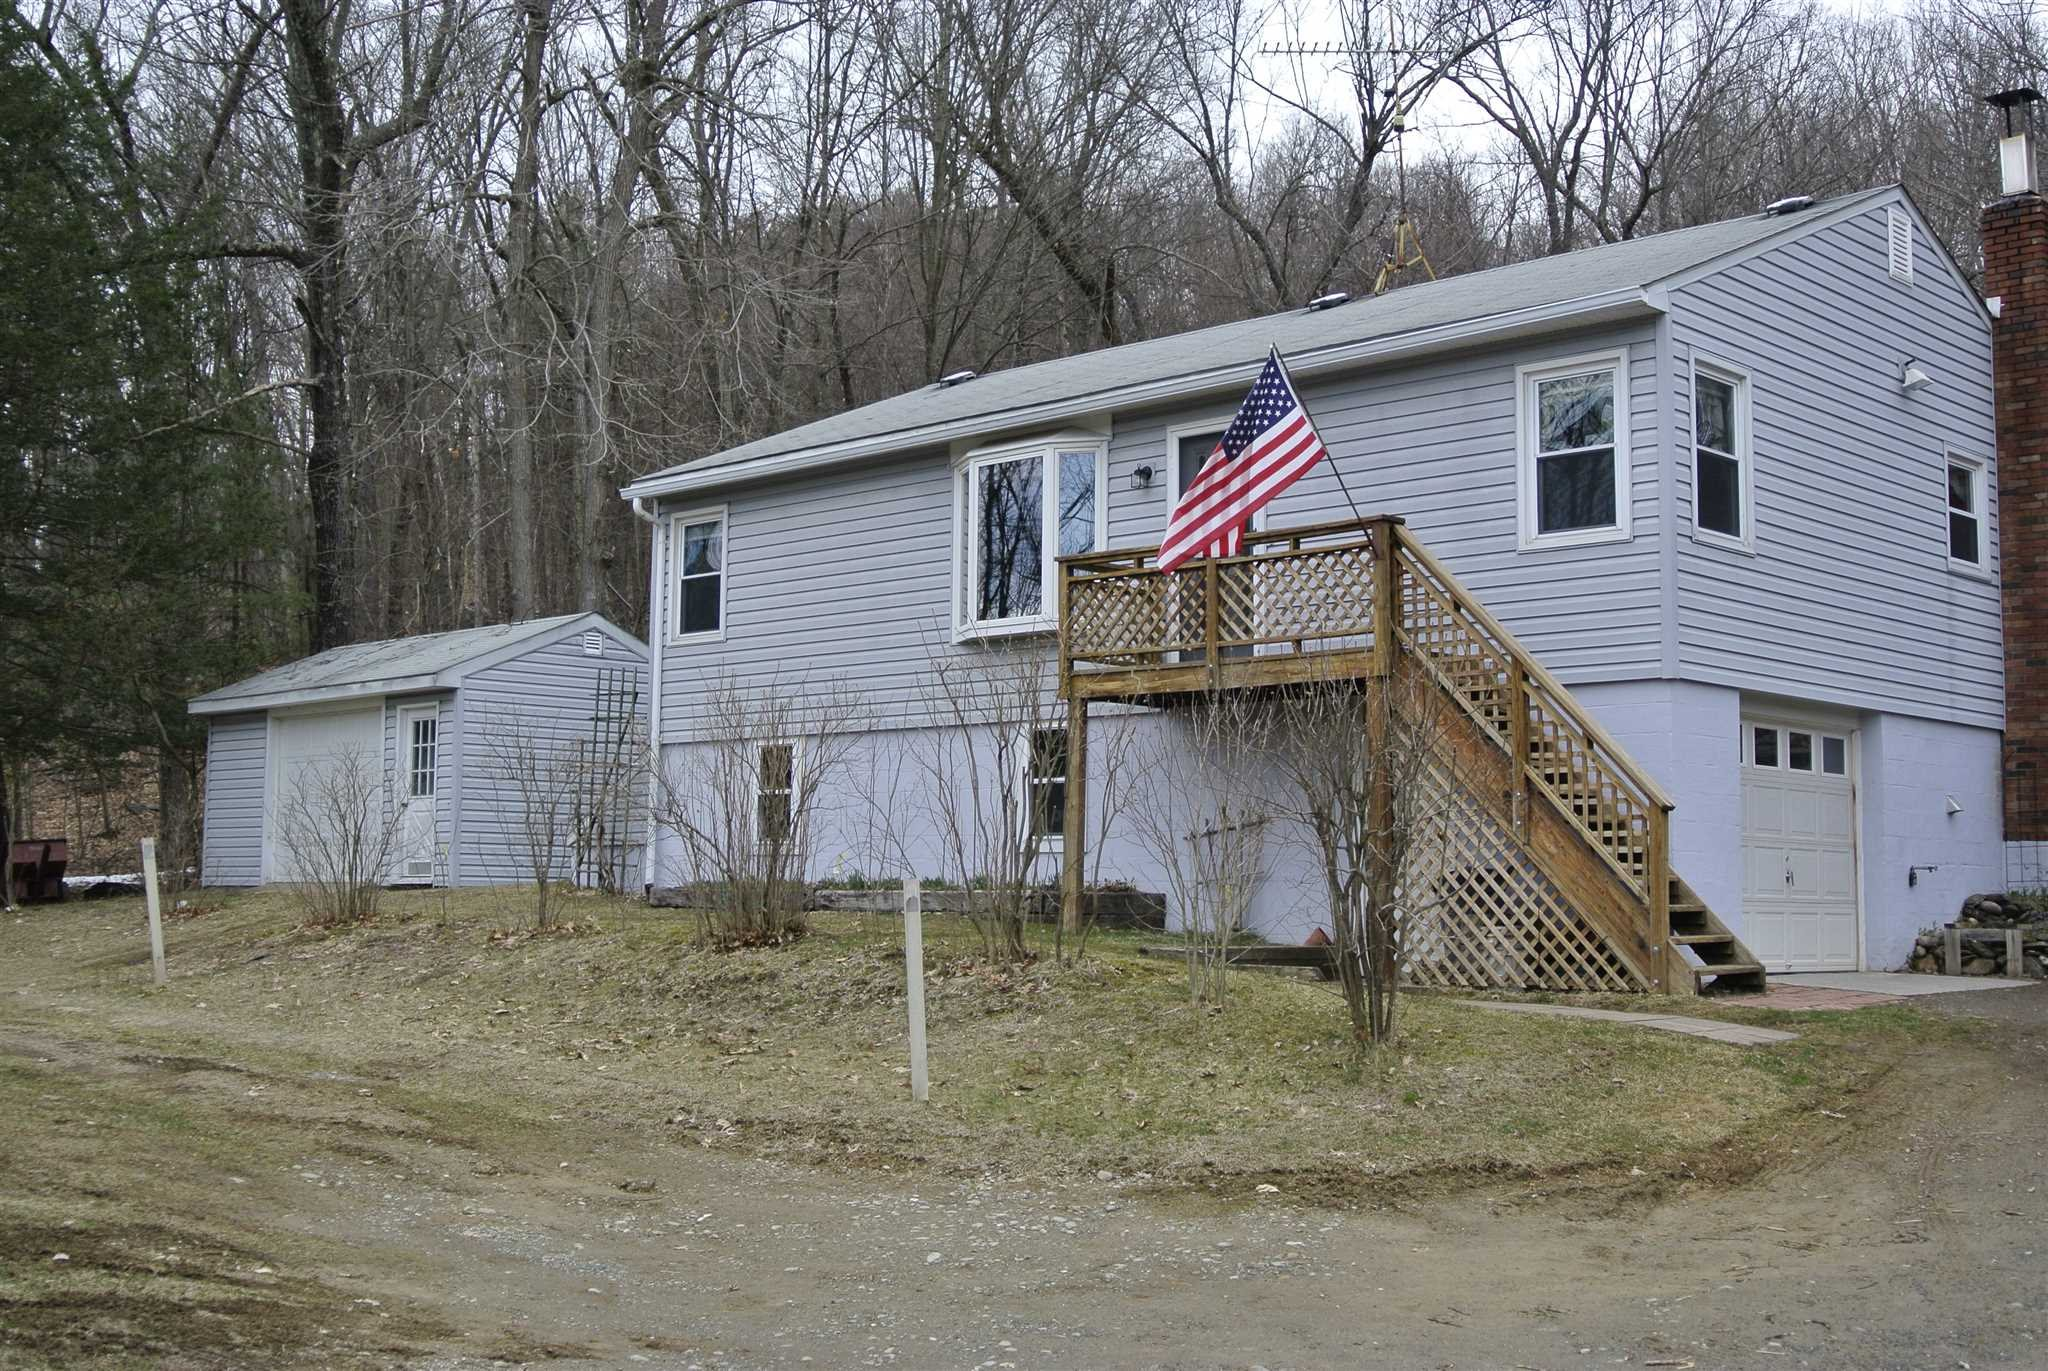 Single Family Home for Sale at 1181 JACKSON CORNERS ROAD 1181 JACKSON CORNERS ROAD Gallatin, New York 12571 United States